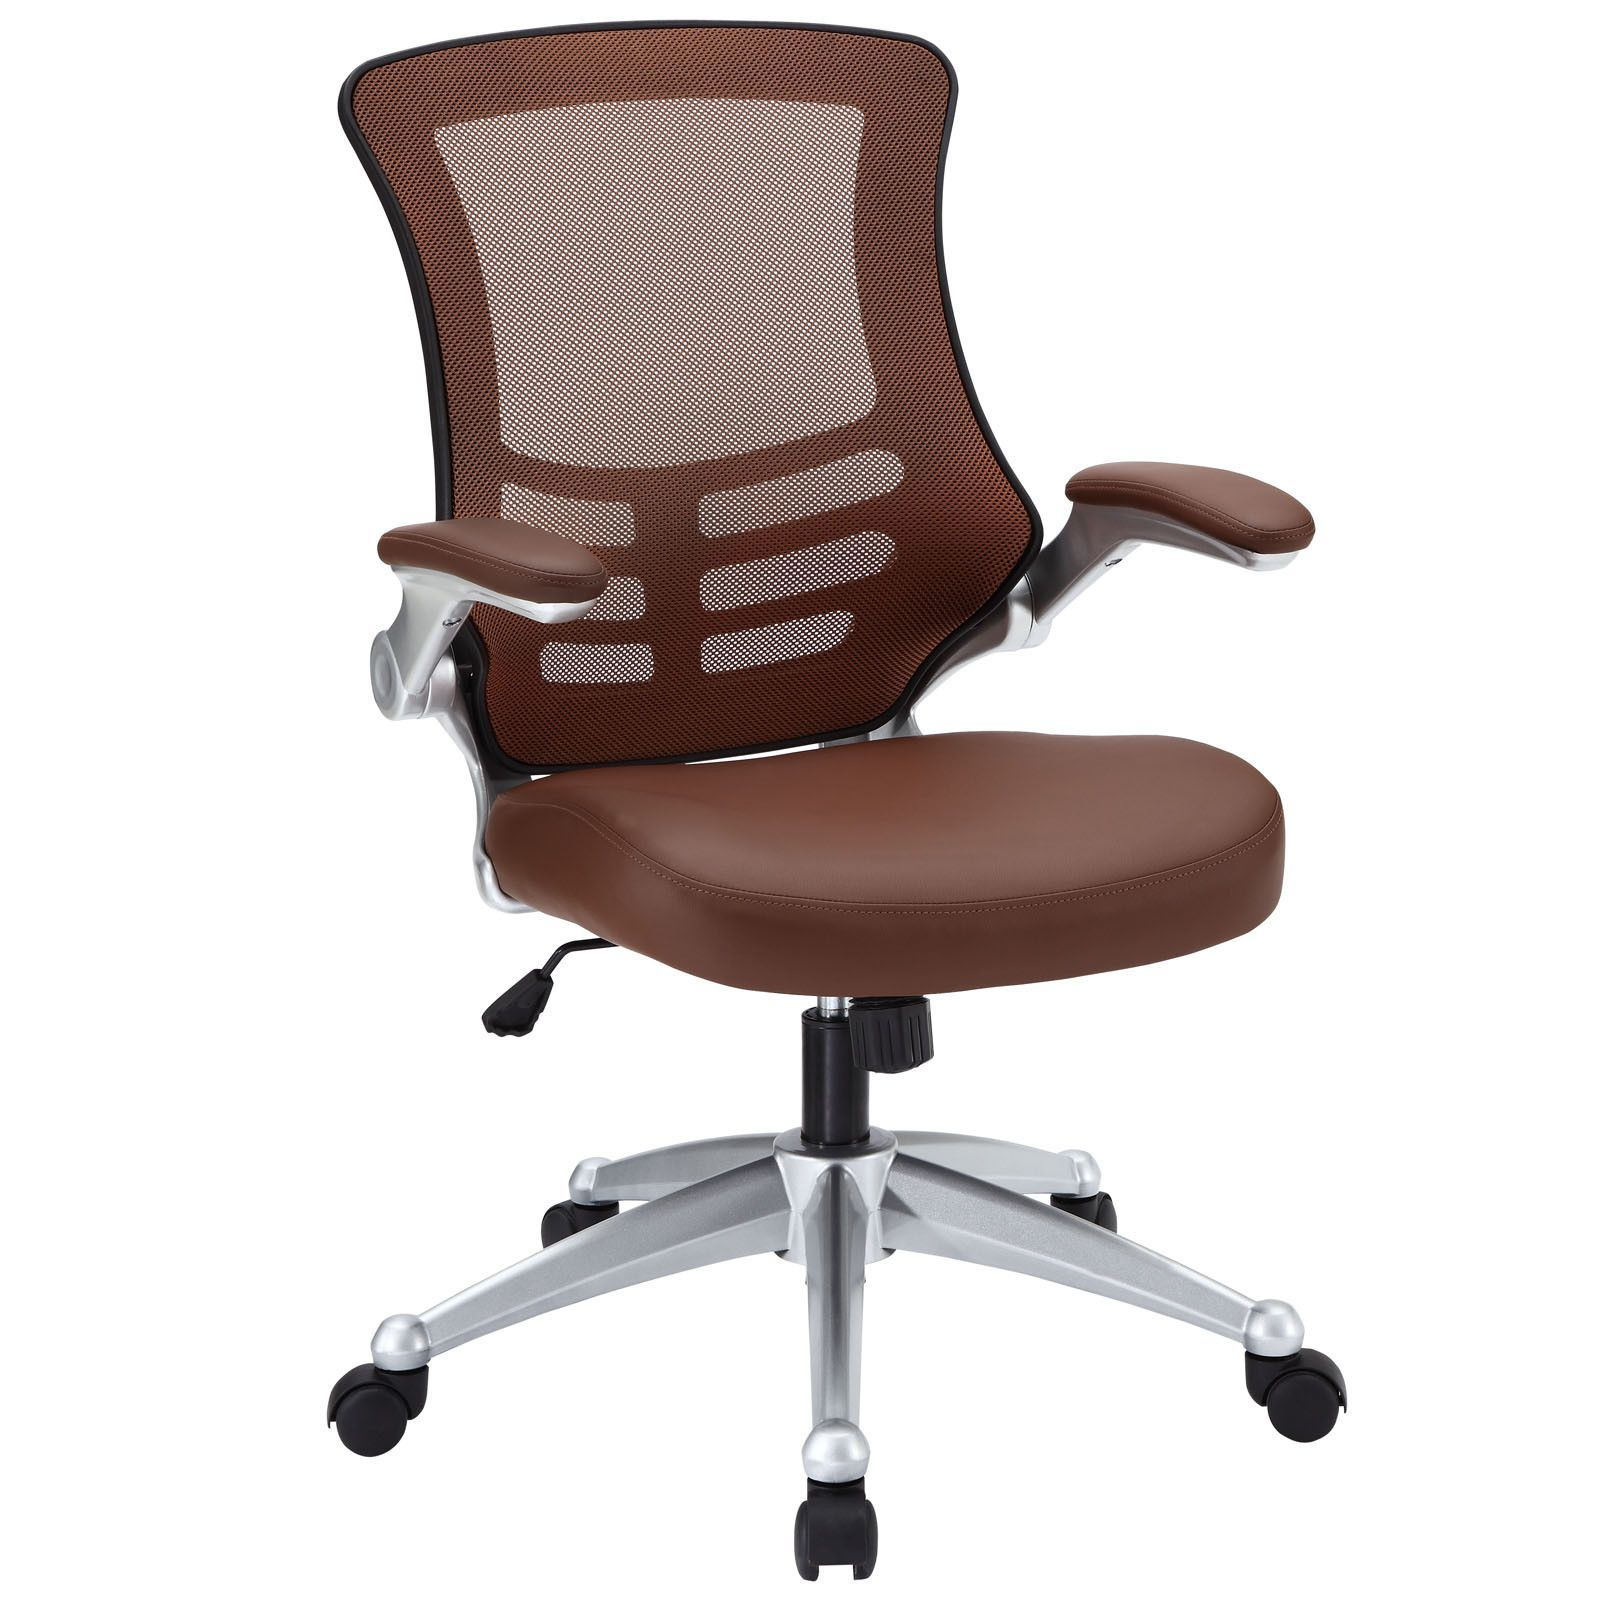 Modway Attainment Office Chair